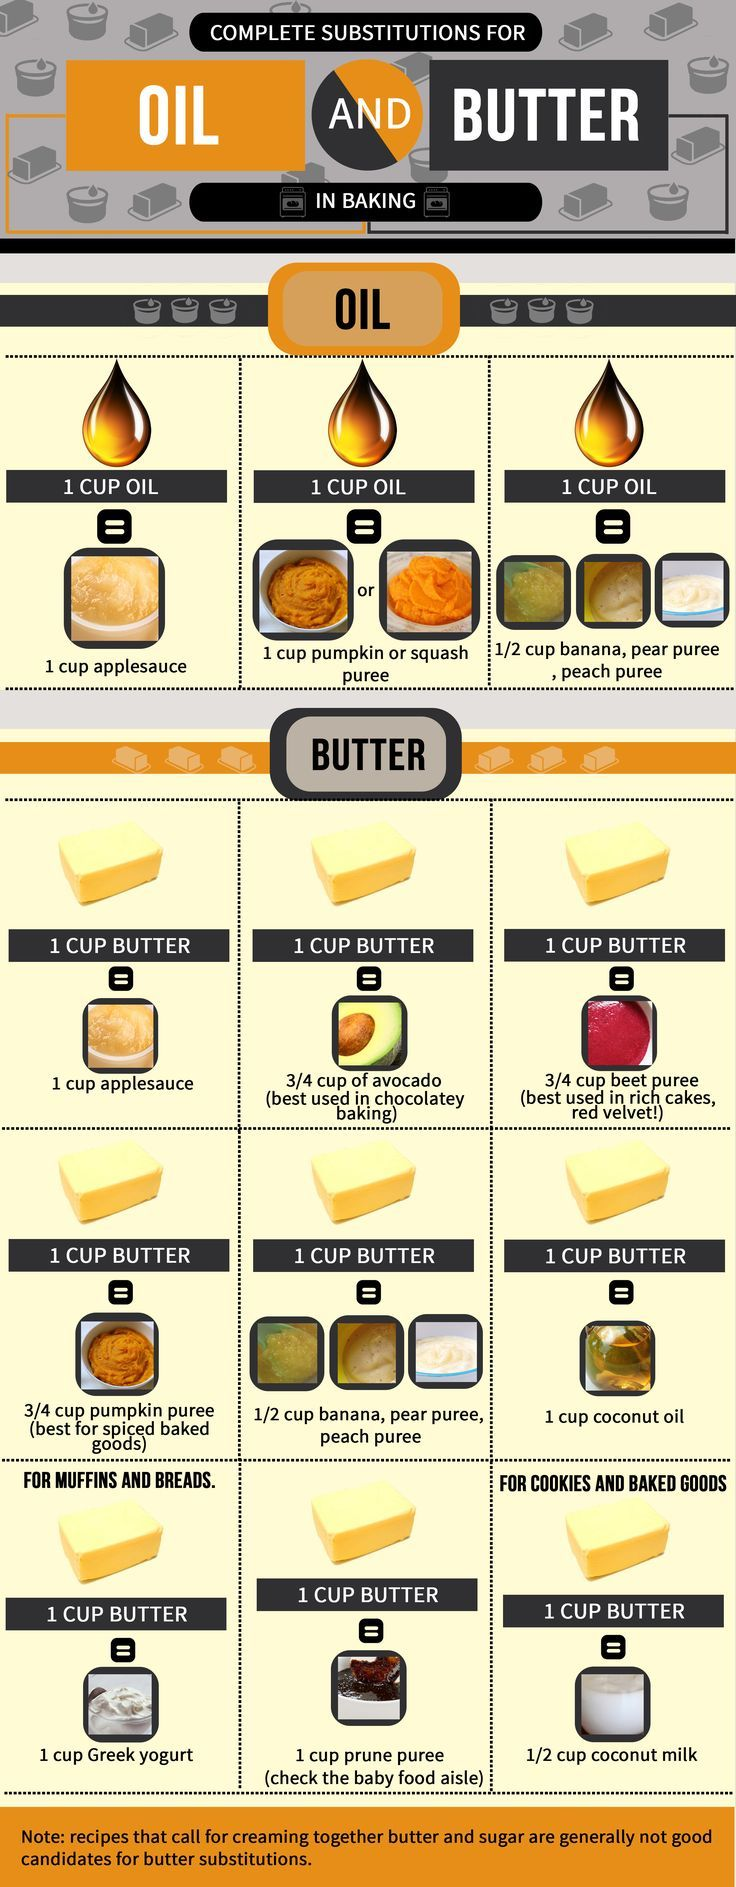 Baking Substitutions For Oil And Butter Can Be Hard To Find In One Place Here We Have Many Many O Baking Substitutes Cooking Substitutions Food Substitutions